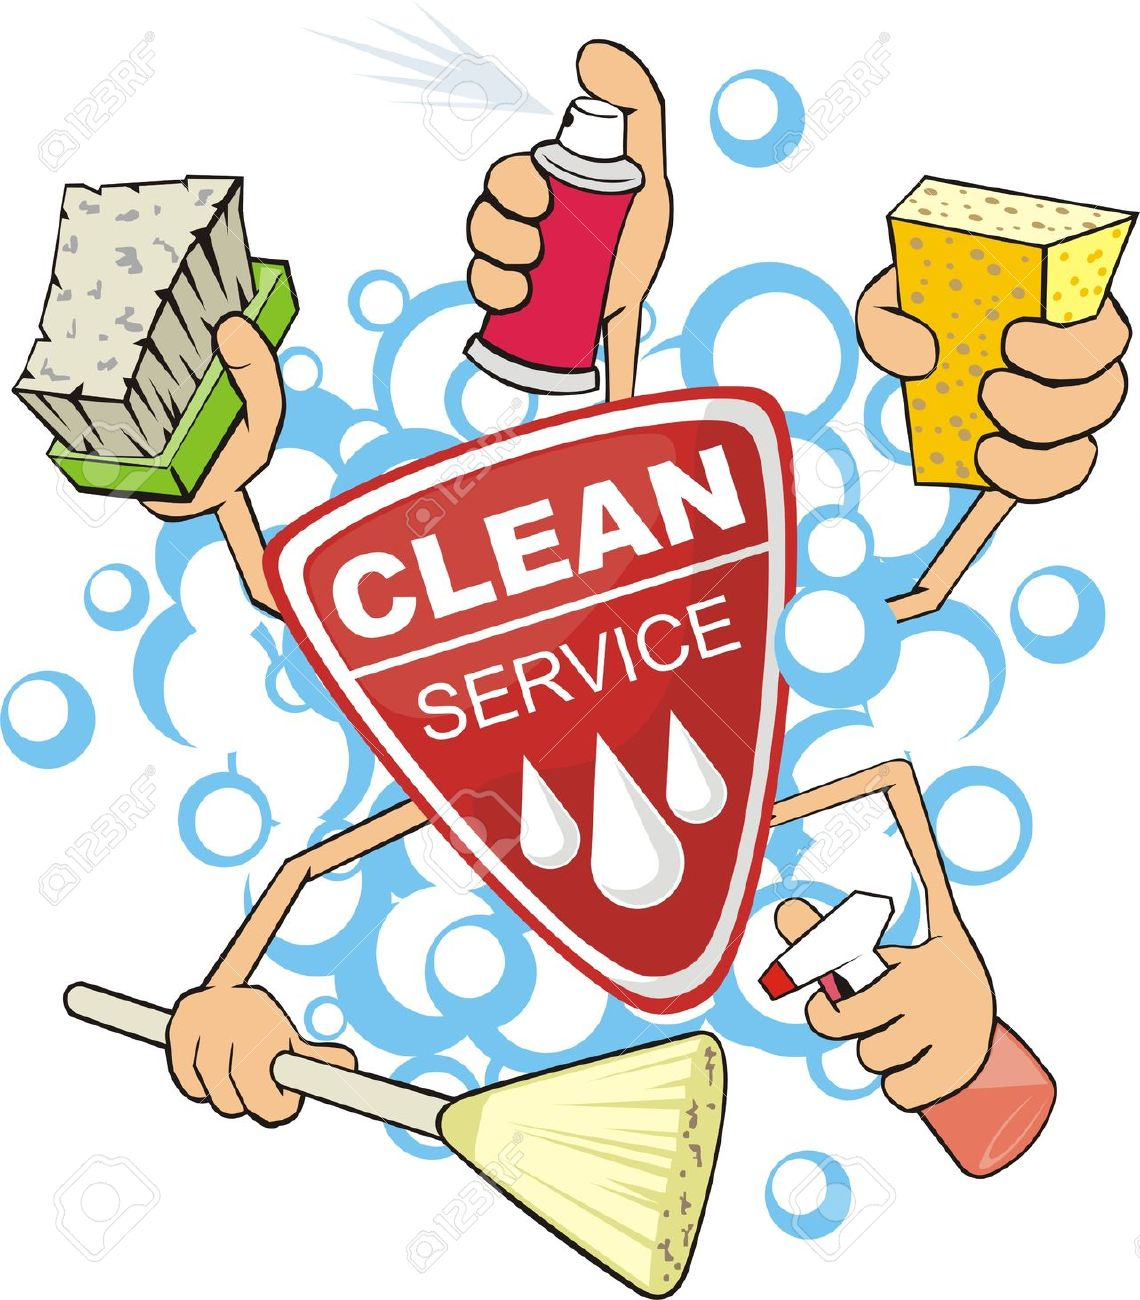 Cleaning Services Clipart